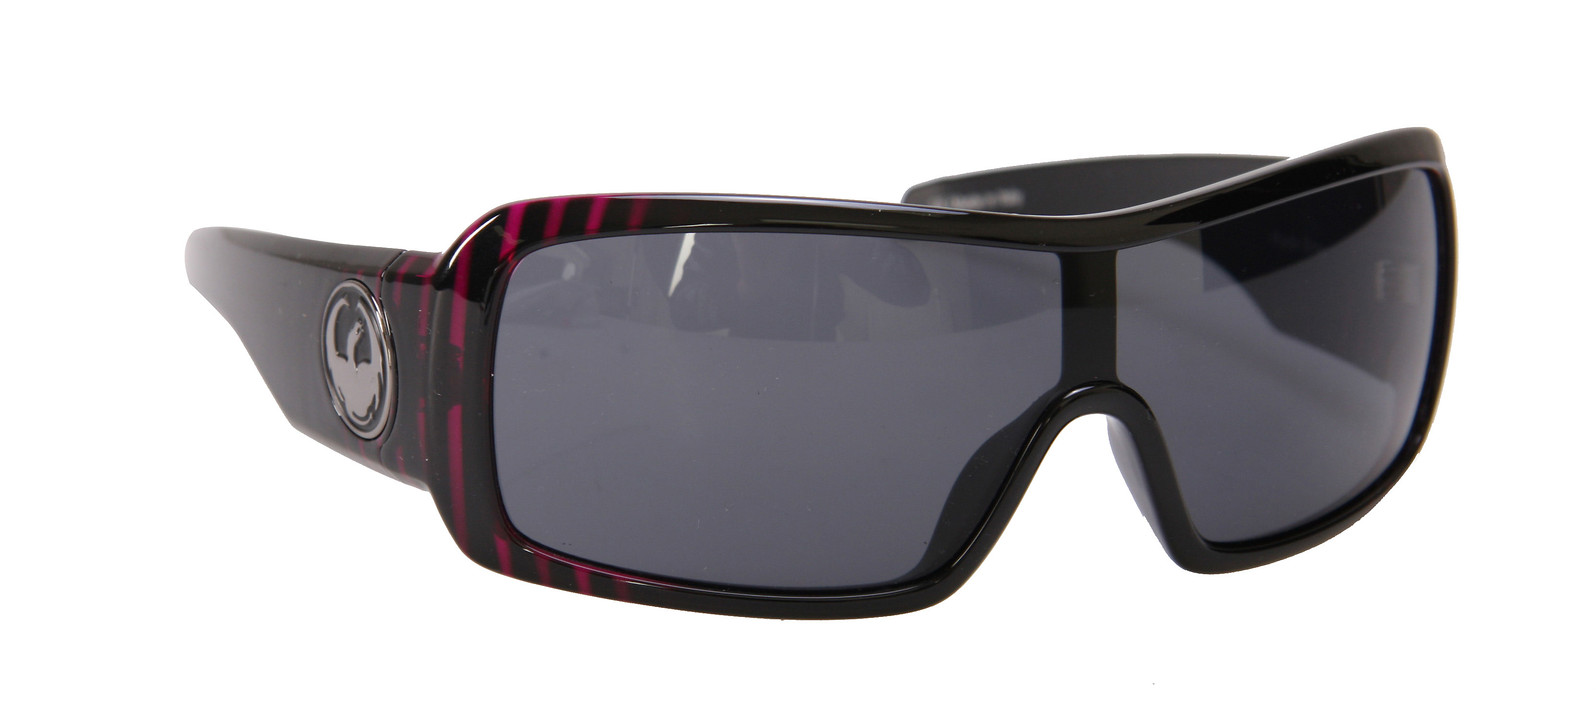 Dragon Phase Sunglasses Jet/Purple Stripe/Grey Lens  dragon-phase-sngls-prplstrpgry-09.jpg